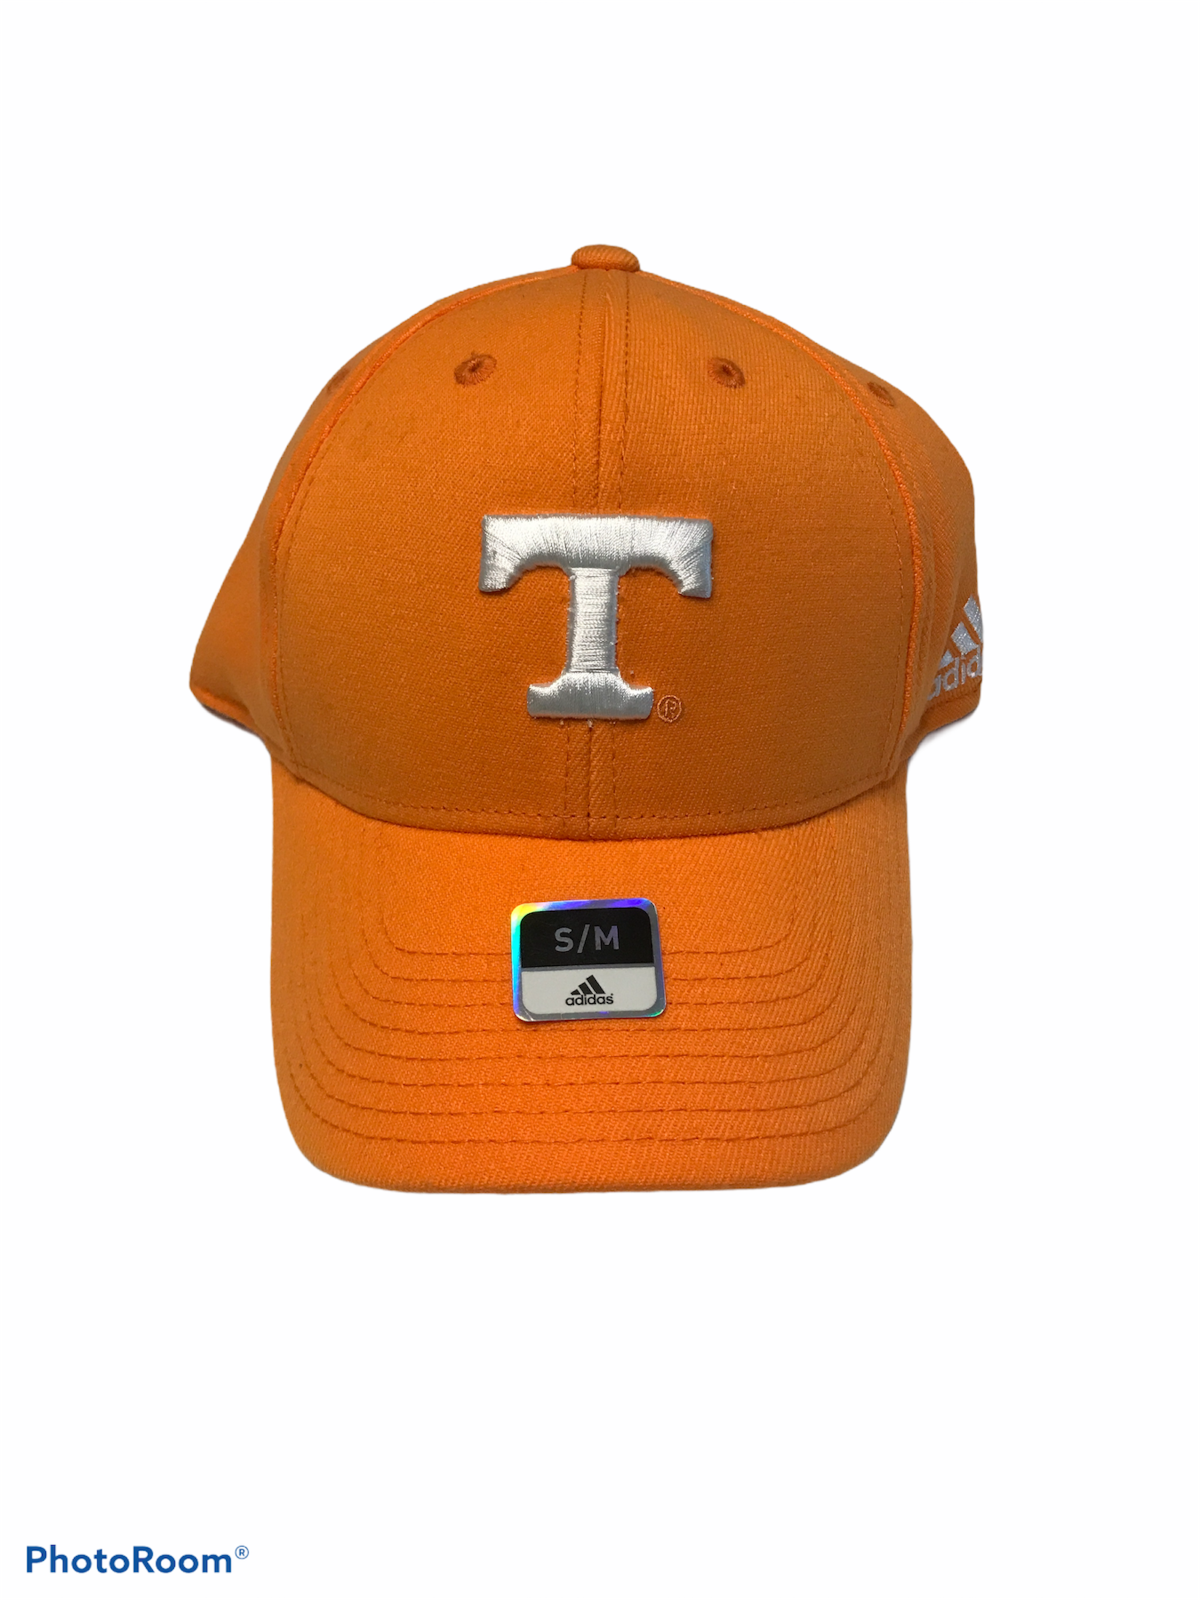 Tennessee Volunteers Vols Cap Hat Adidas Fit Max 70 Fitted Stretch Size S/M NWD - $14.98